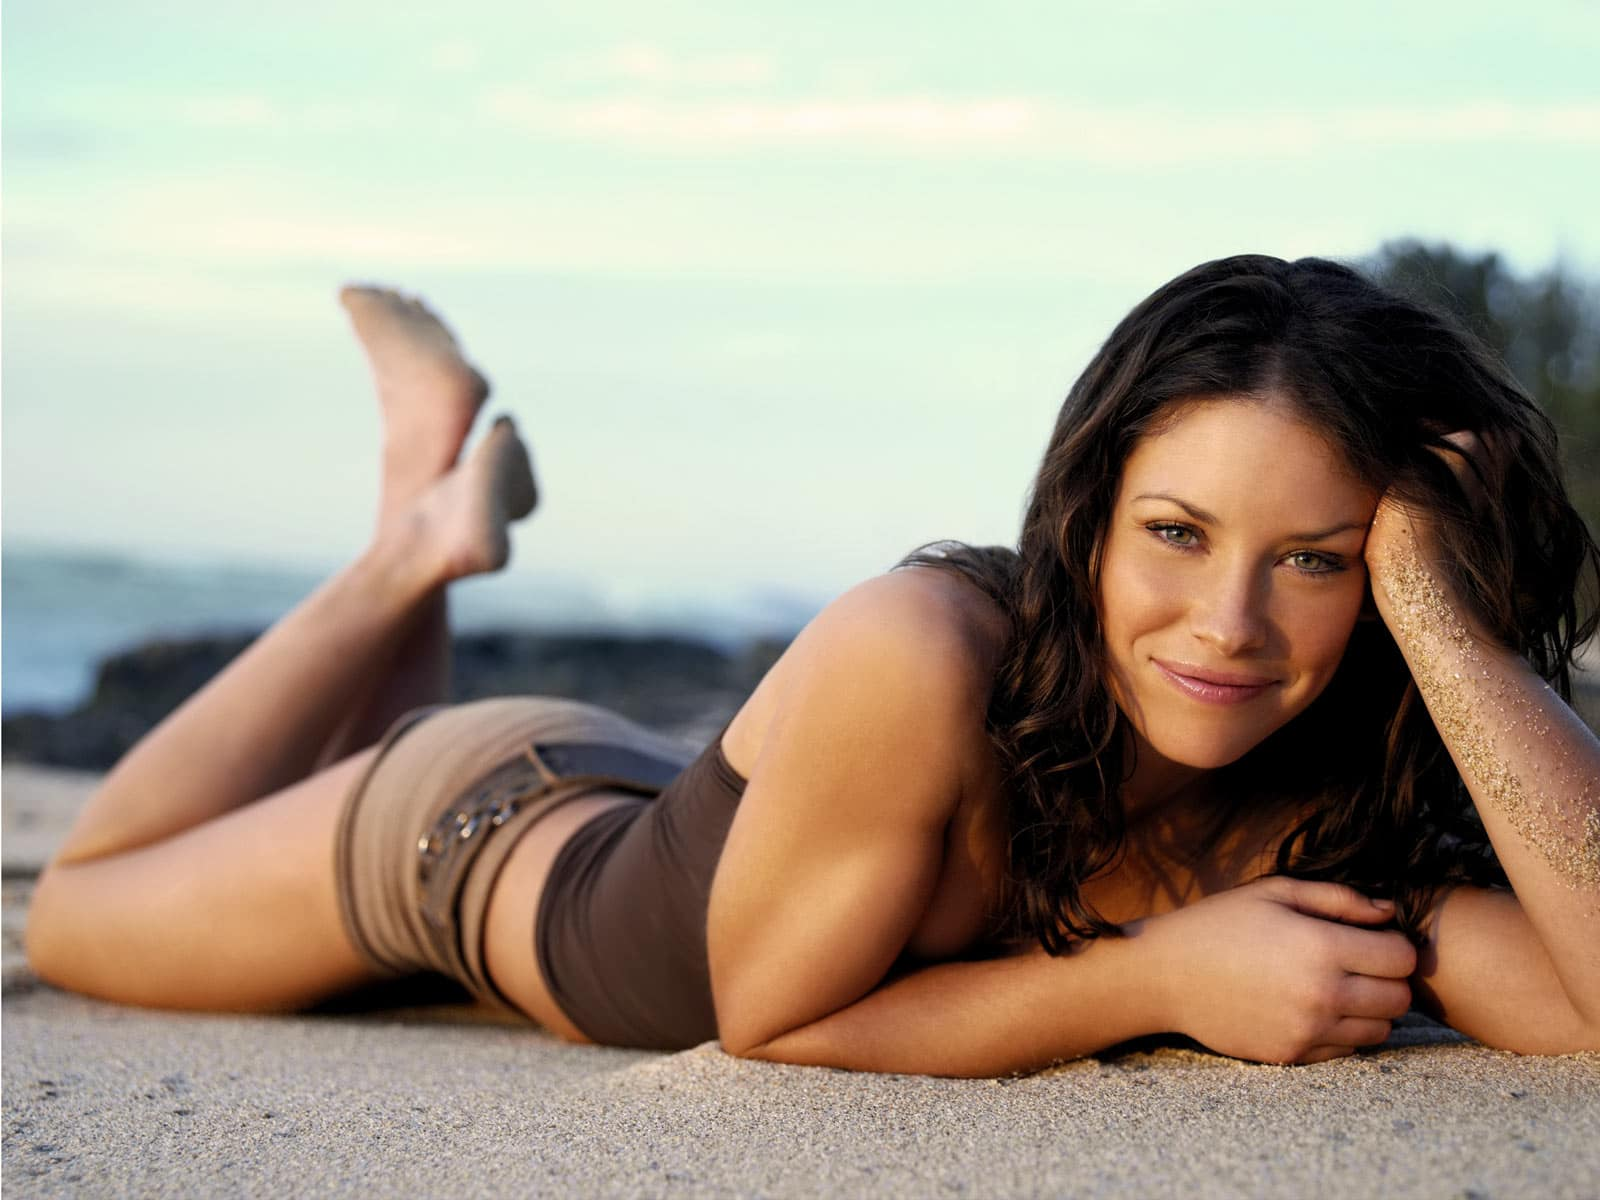 Evangeline Lilly in talks to star in Ant-Man